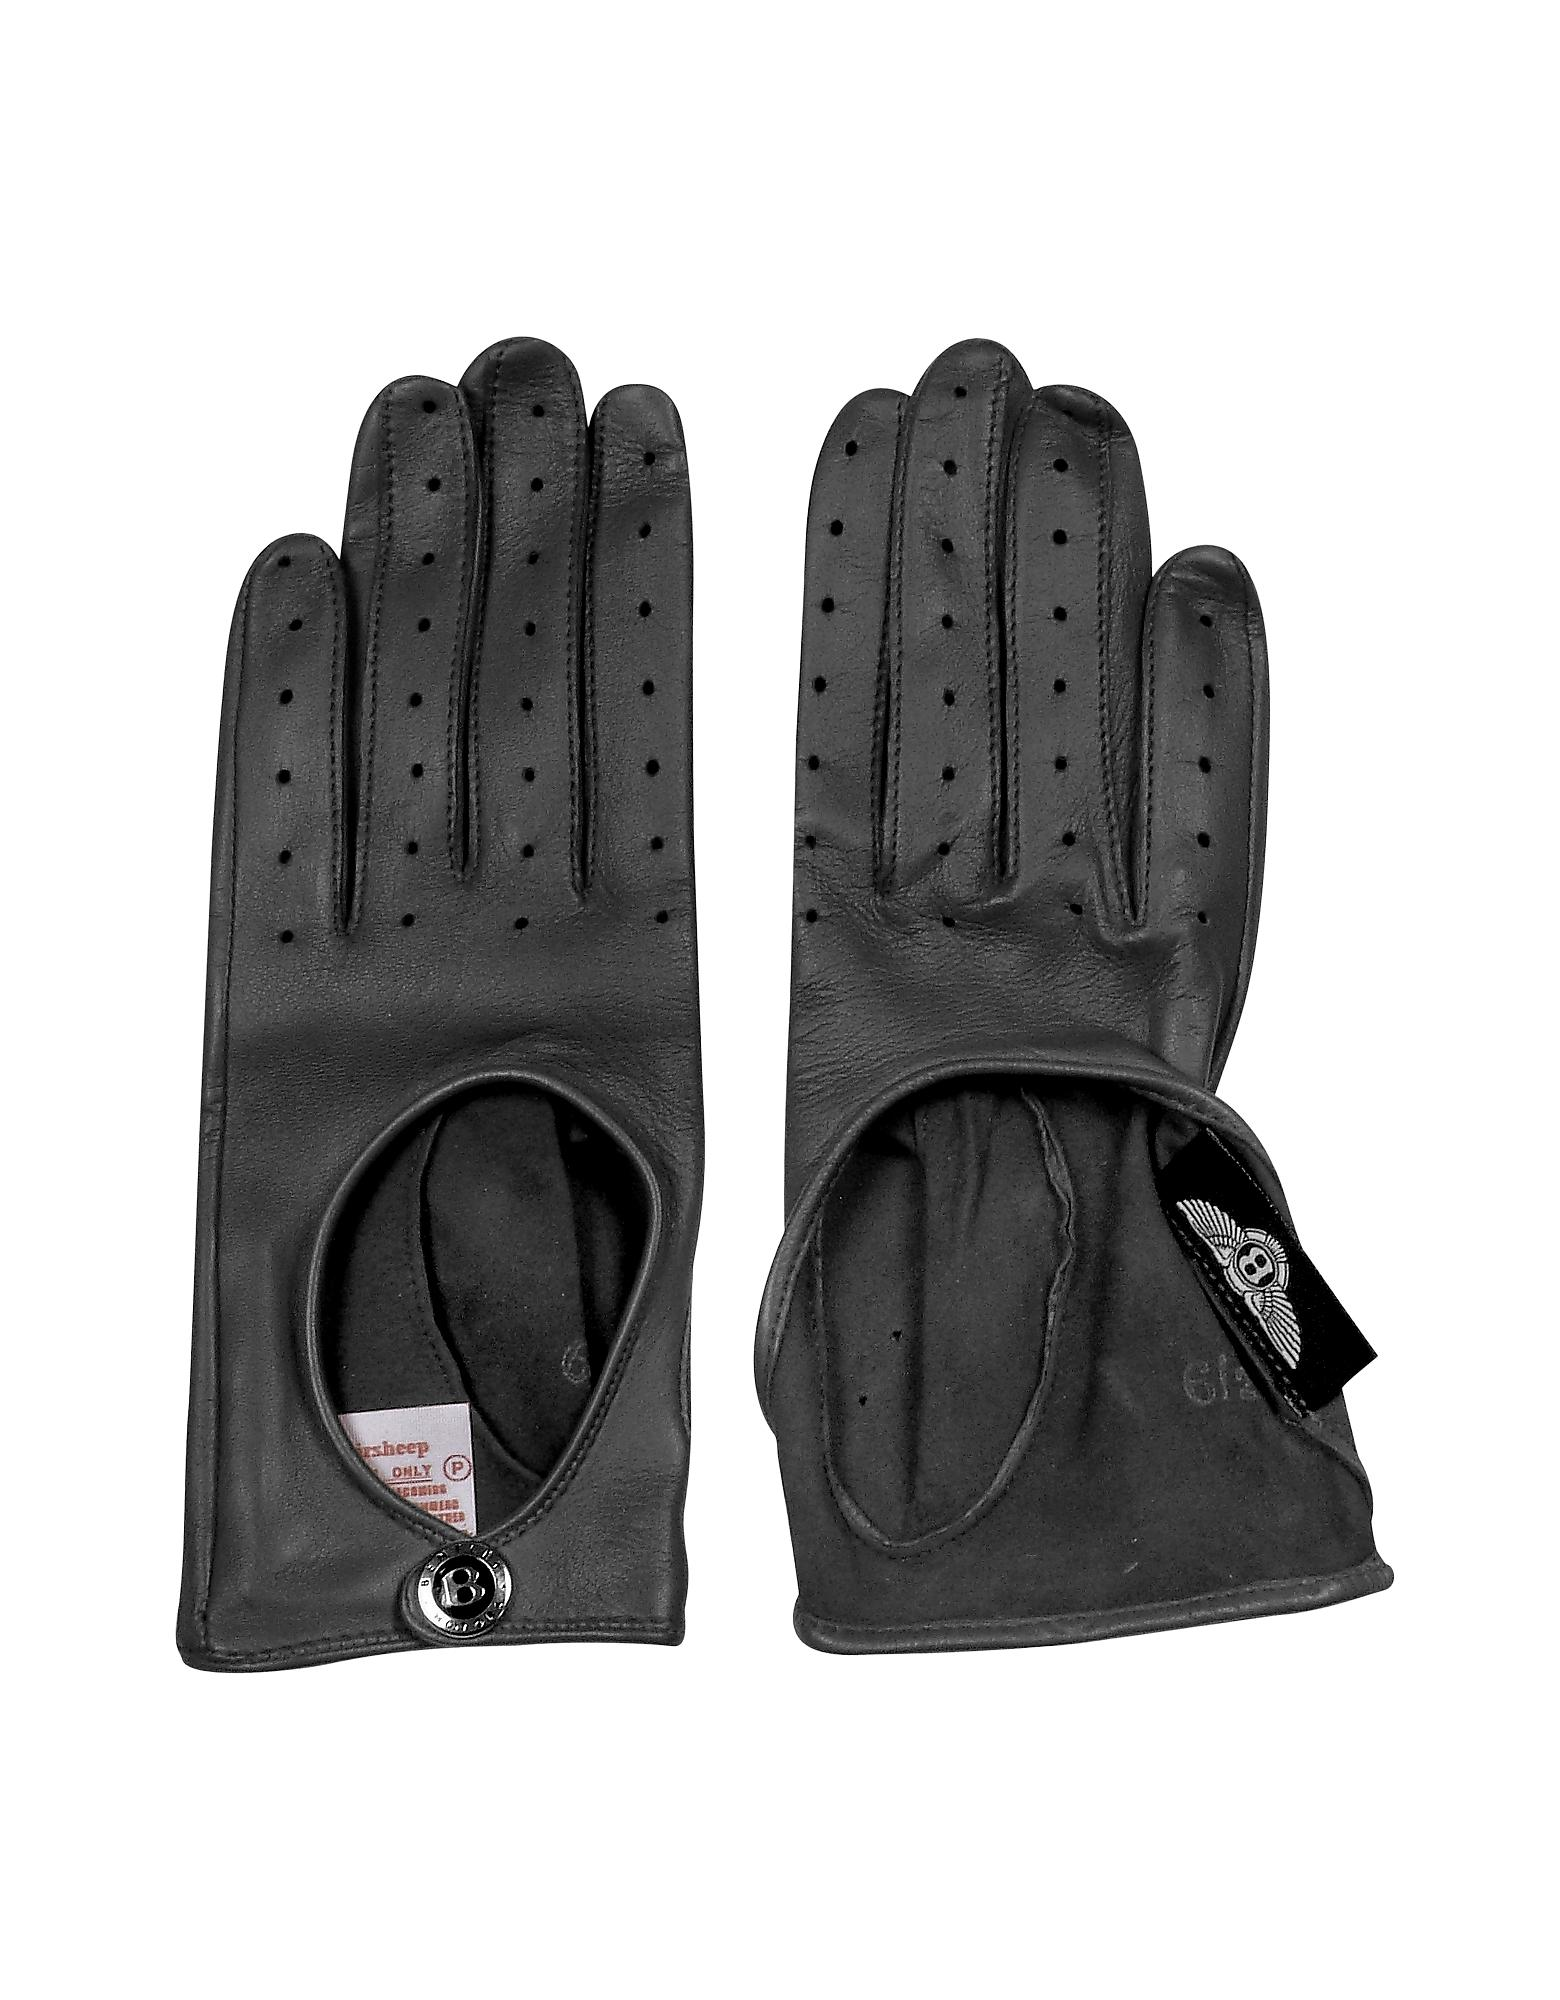 Pittards ladies leather gloves - View Fullscreen